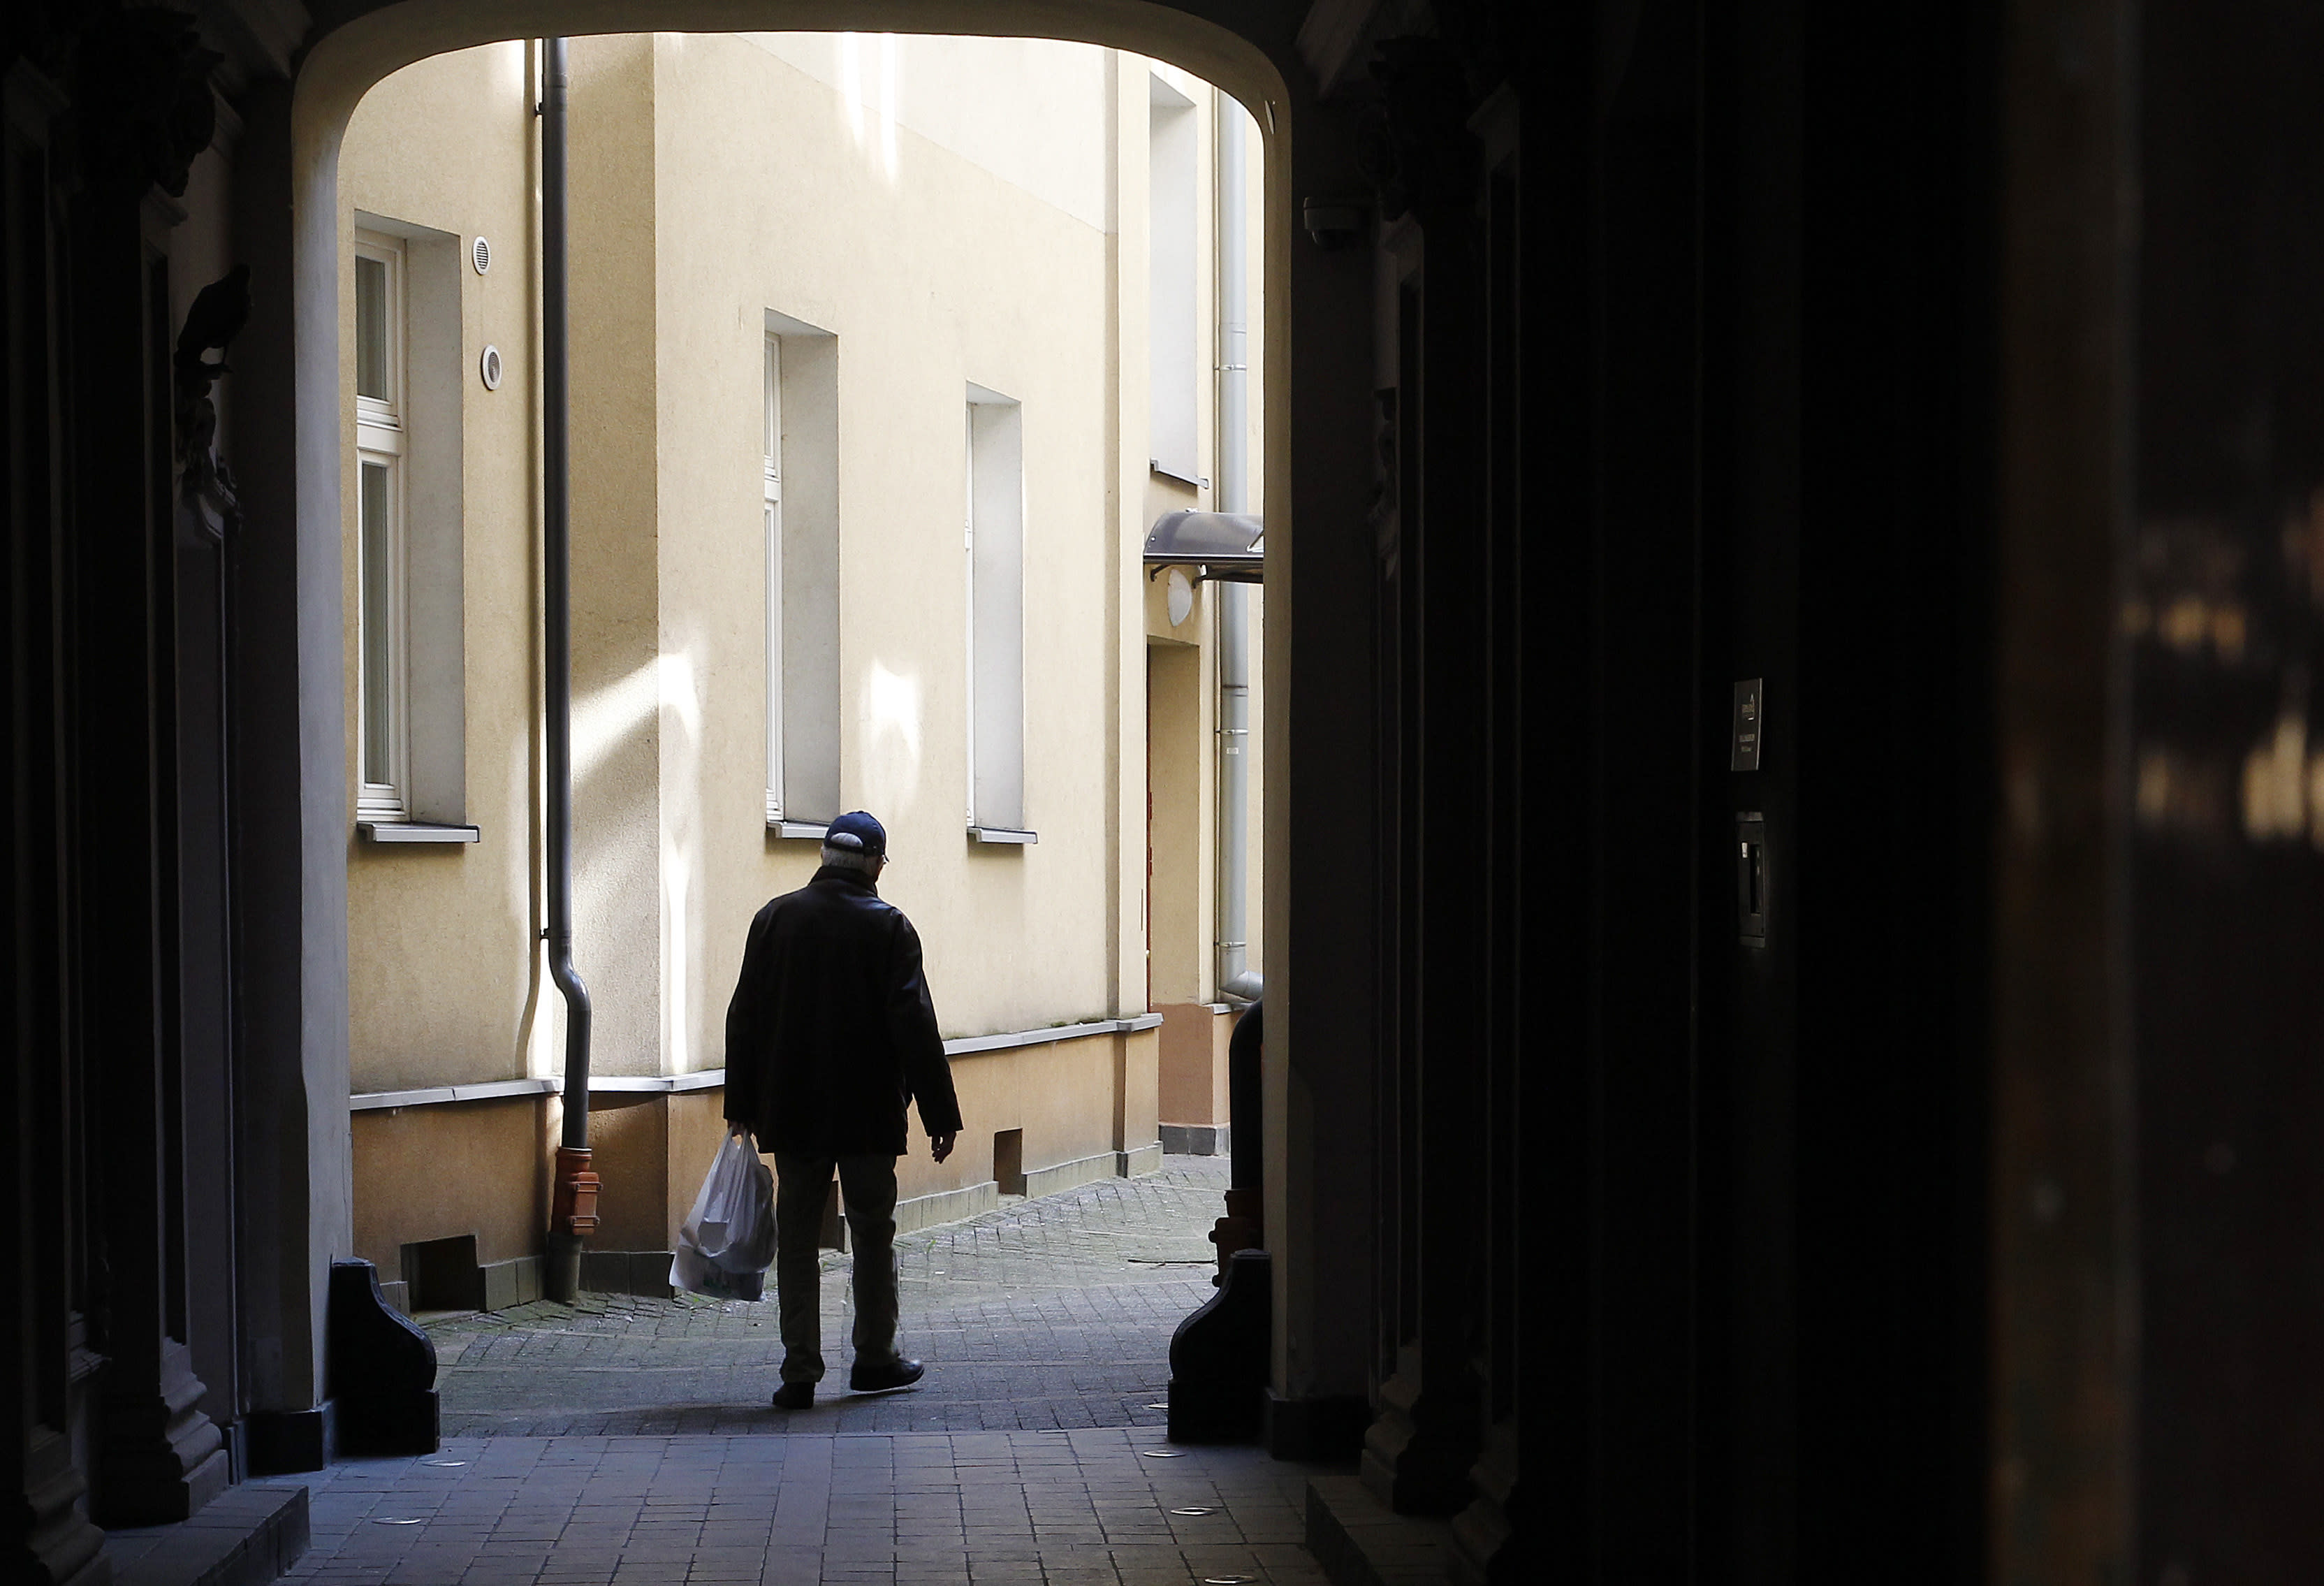 An elderly man returns home with his shopping, which is one of the very few outdoor activities allowed under a national quarantine against the spread of the coronavirus, in Warsaw, Poland, on Thursday, March 26, 2020. The new coronavirus causes mild or moderate symptoms for most people, but for some, especially older adults and people with existing health problems, it can cause more severe illness or death.(AP Photo/Czarek Sokolowski)